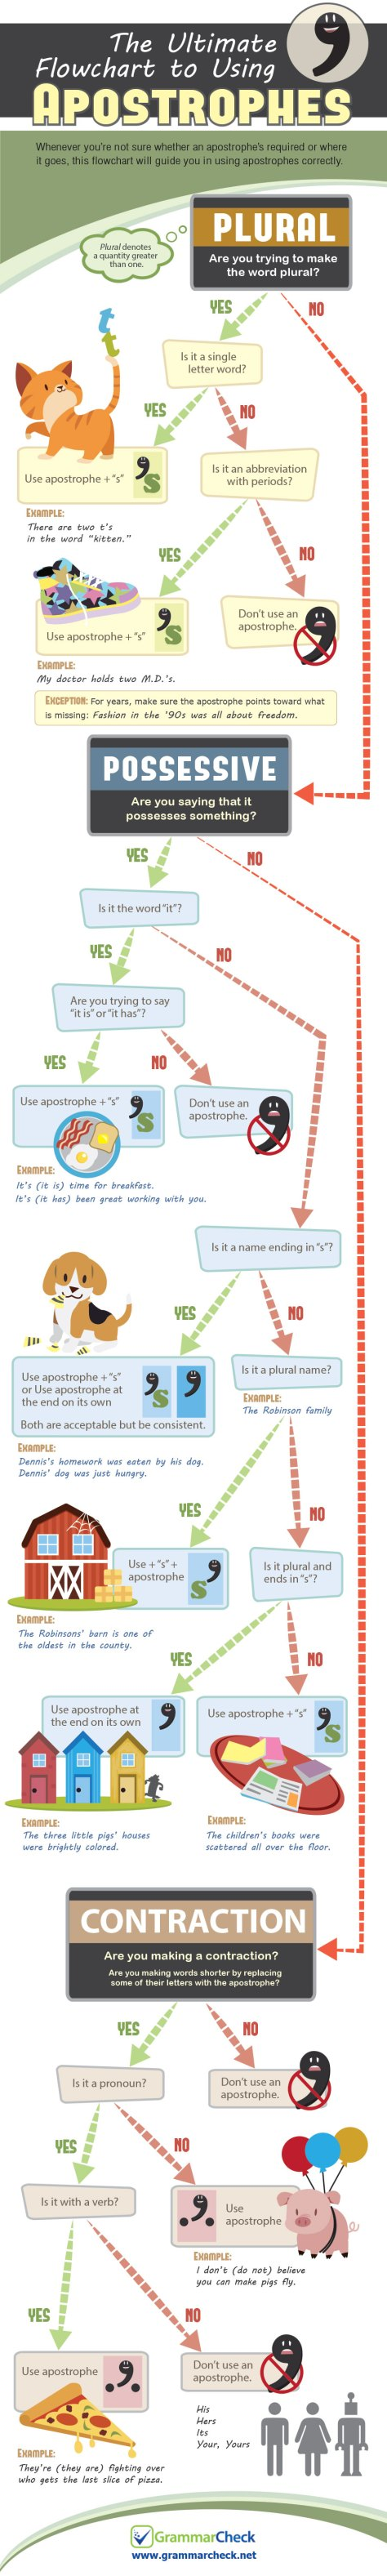 The Ultimate Flowchart to Using Apostrophes (Infographic)